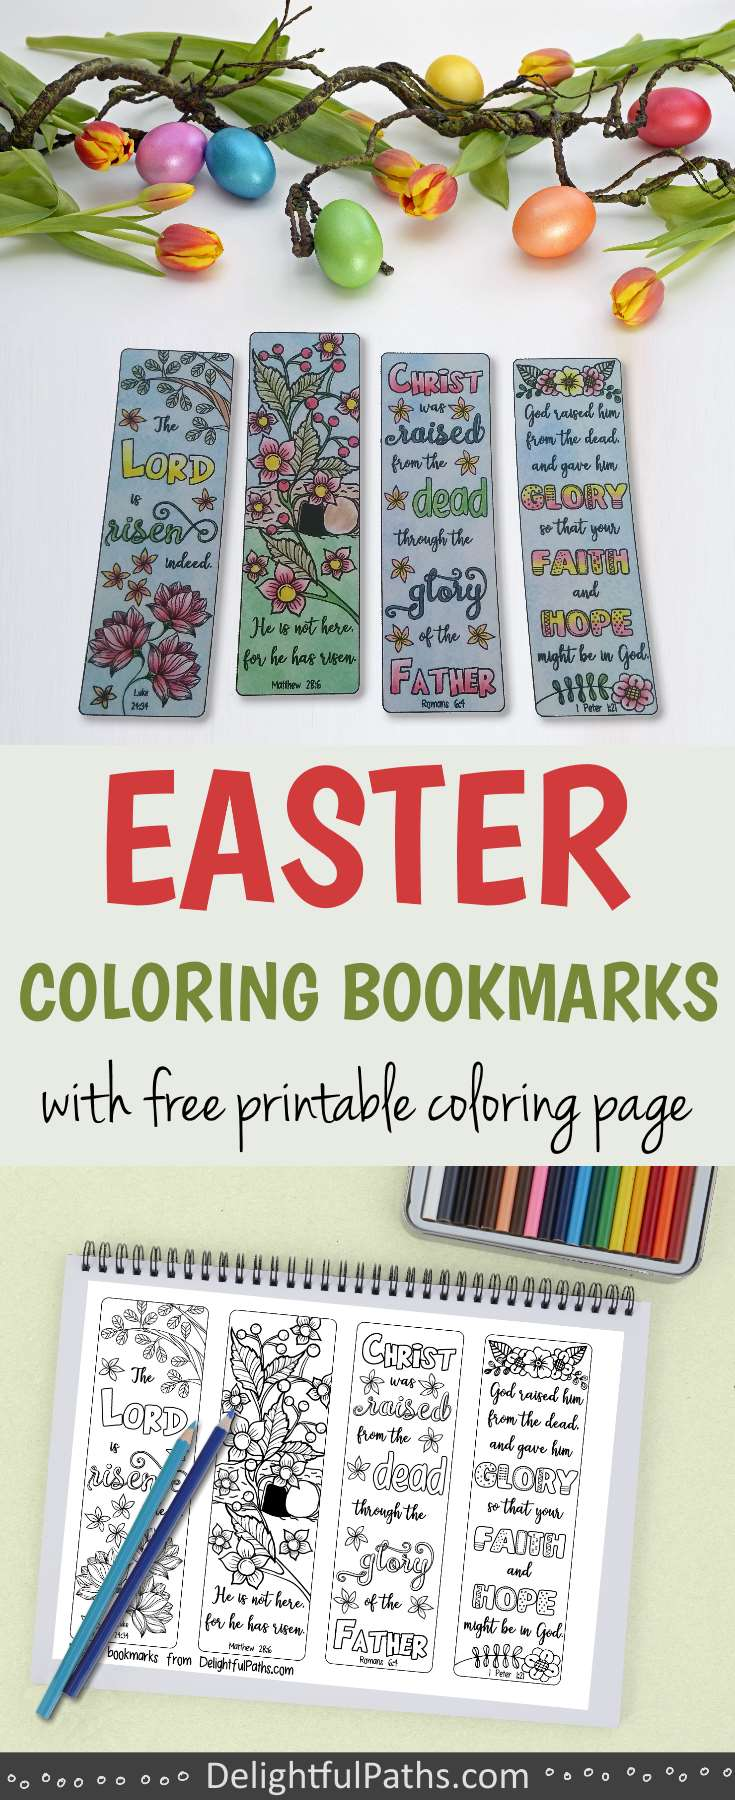 image regarding Who I Am in Christ Printable Bookmark called Easter Coloring Bookmarks with Bible Verses - Tasty Paths